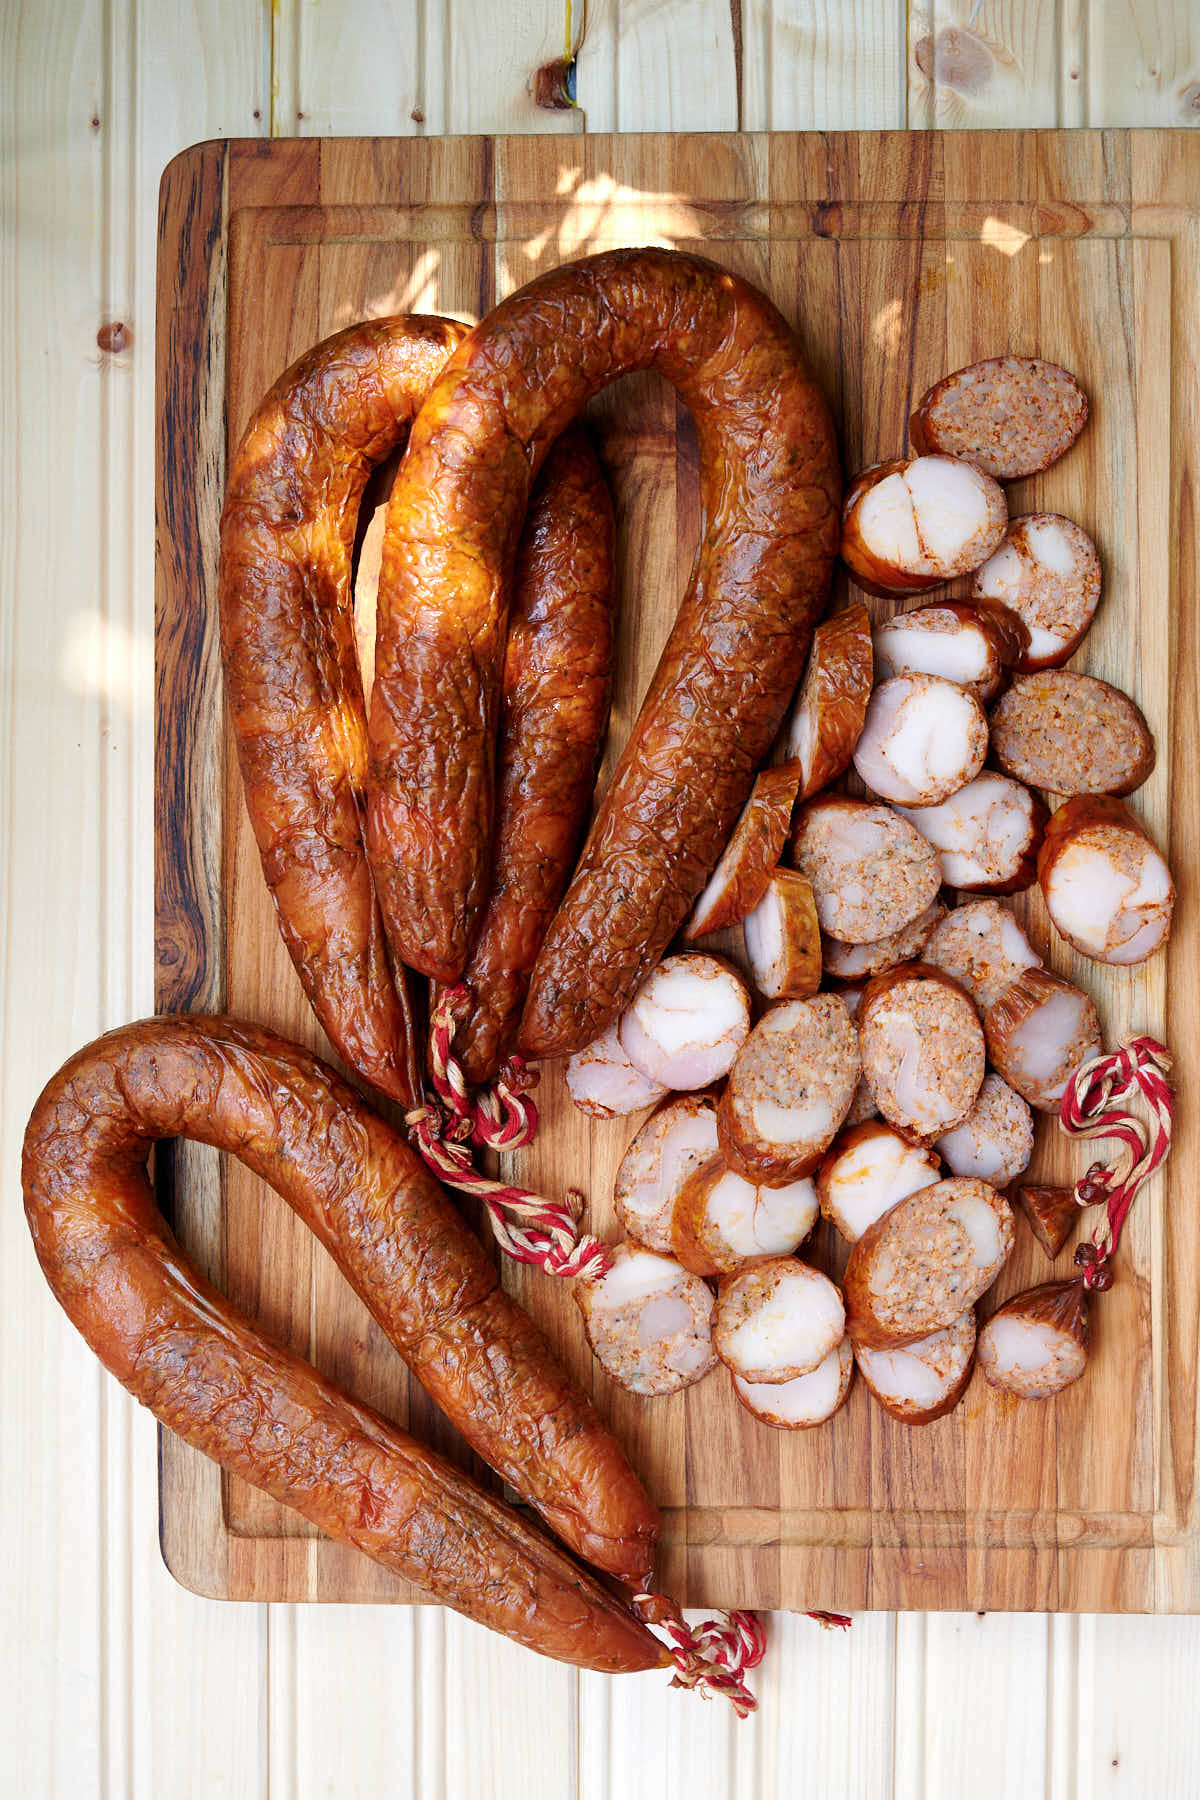 Whole and sliced Homemade Chicken Andouille Sausage on a cutting board